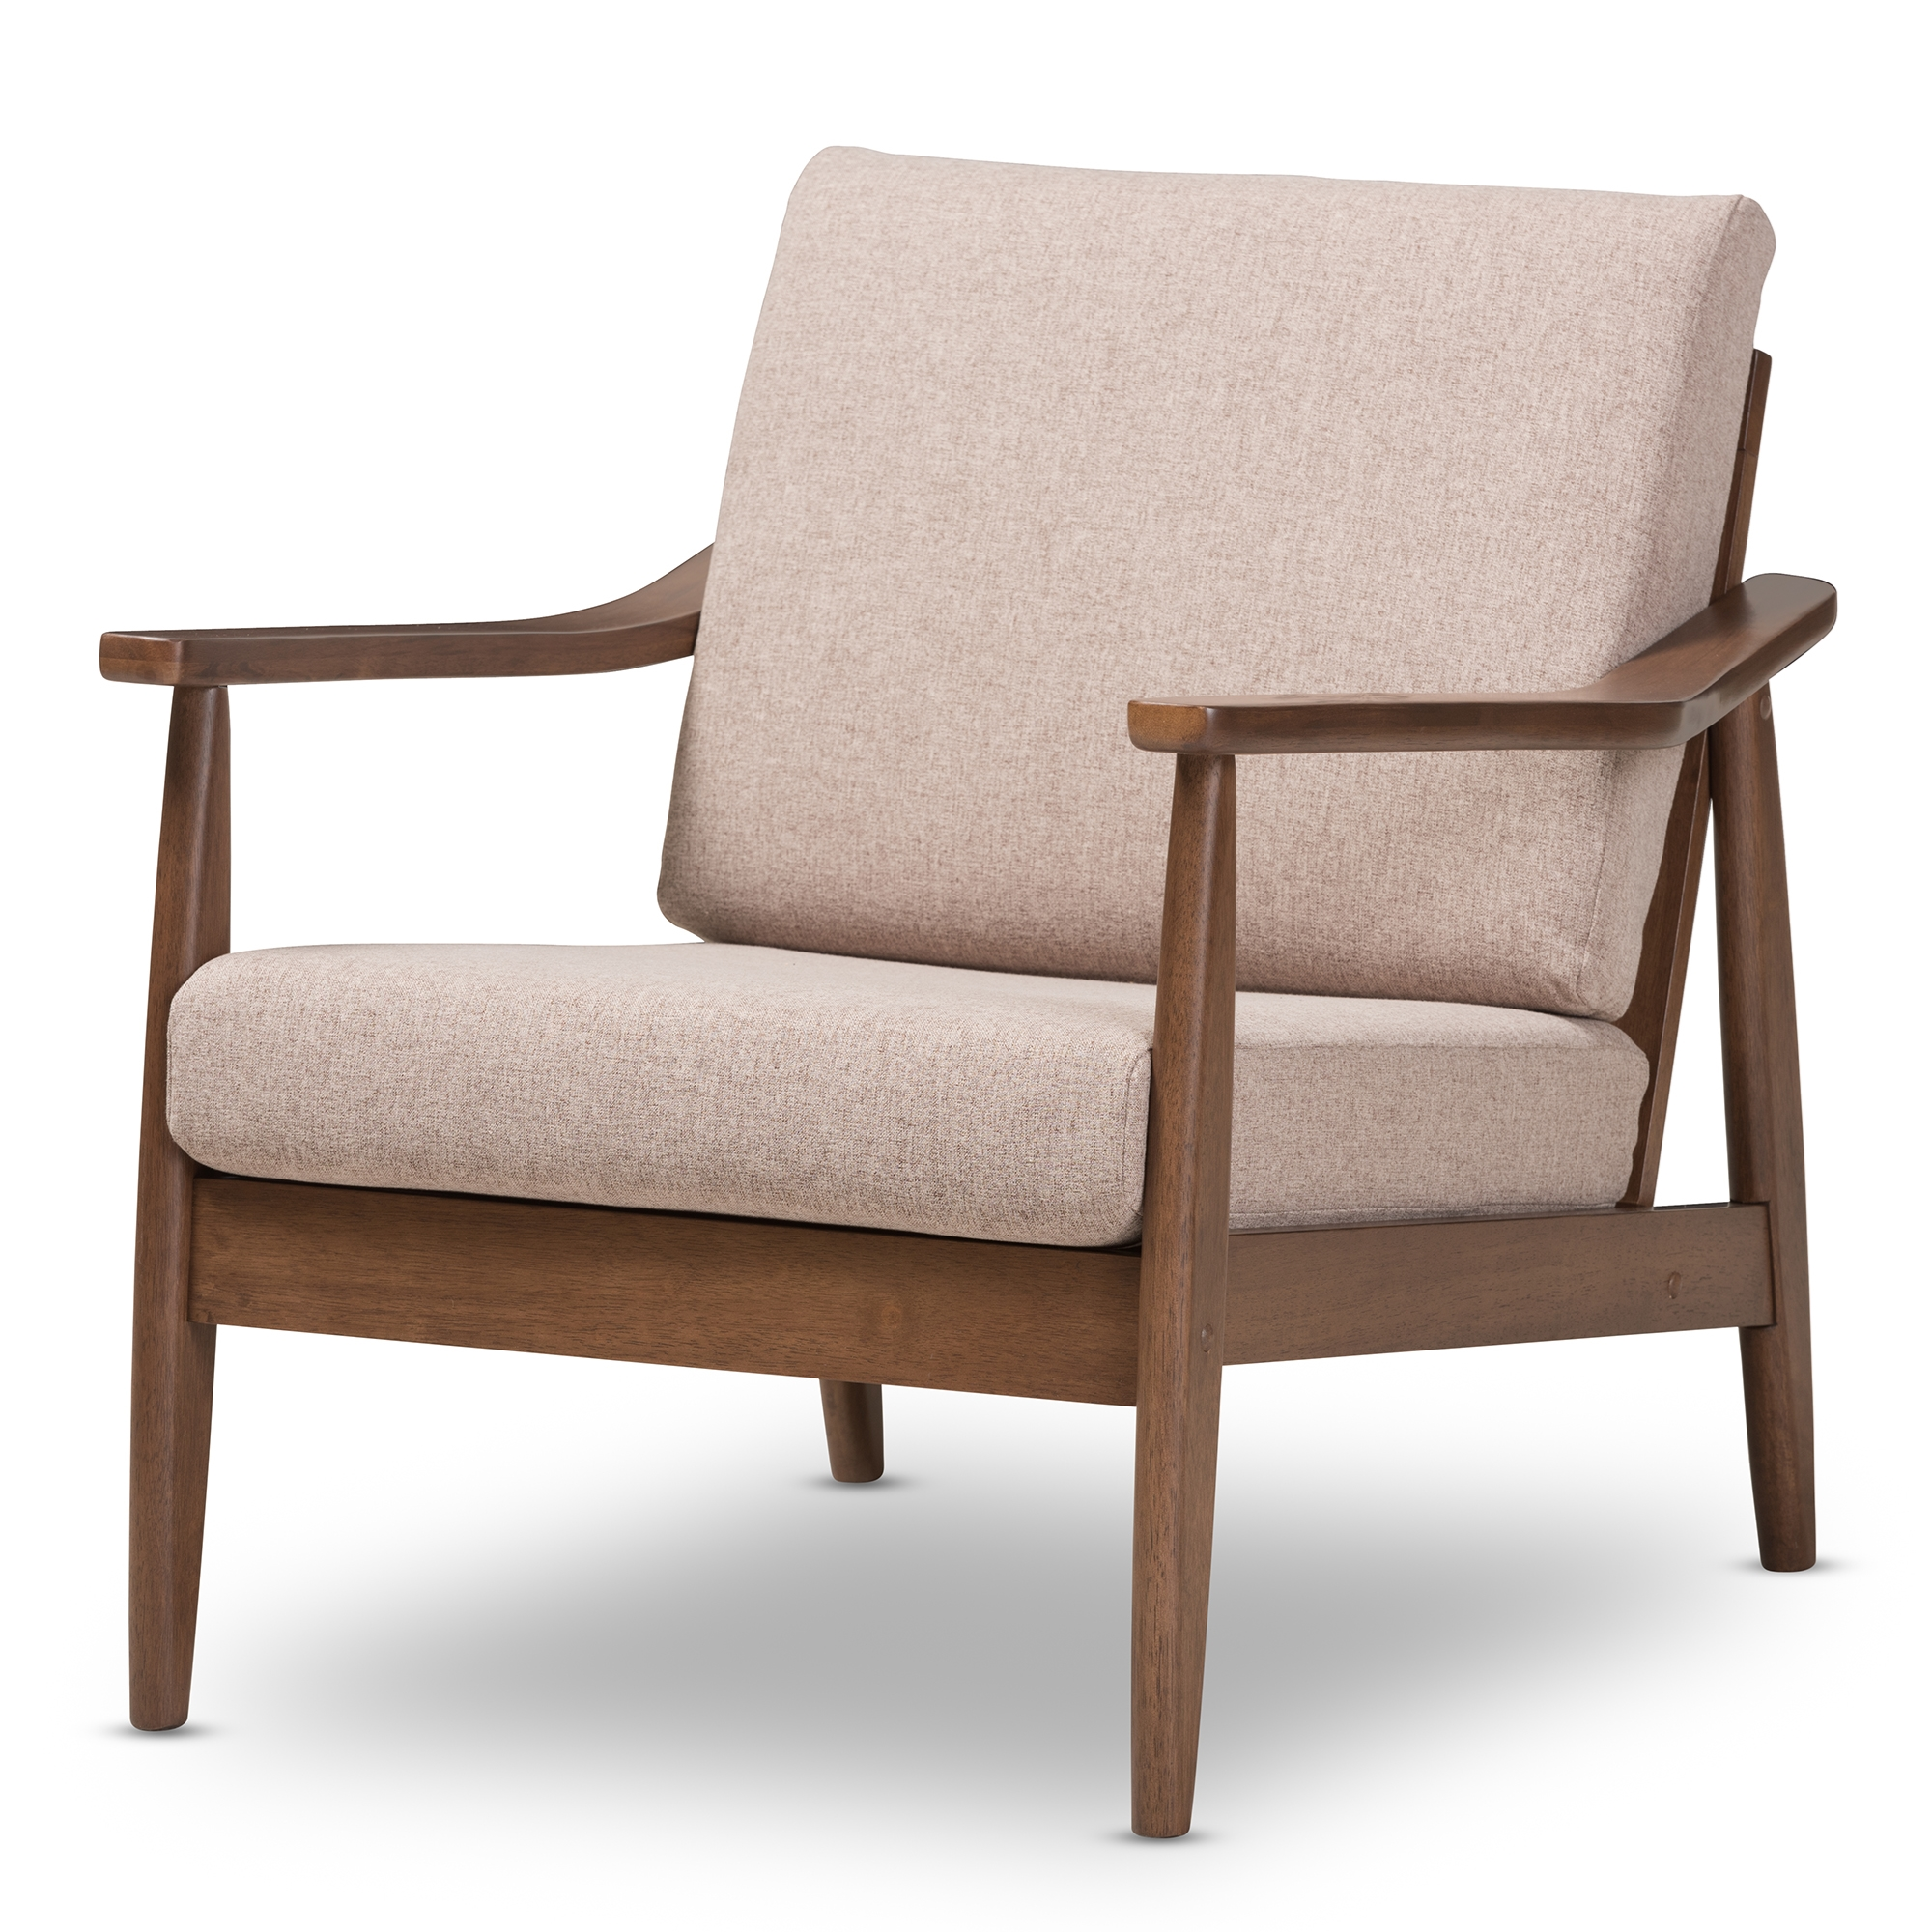 Baxton Studio Venza Mid Century Modern Walnut Wood Light Brown Fabric  Upholstered Lounge Chair Affordable